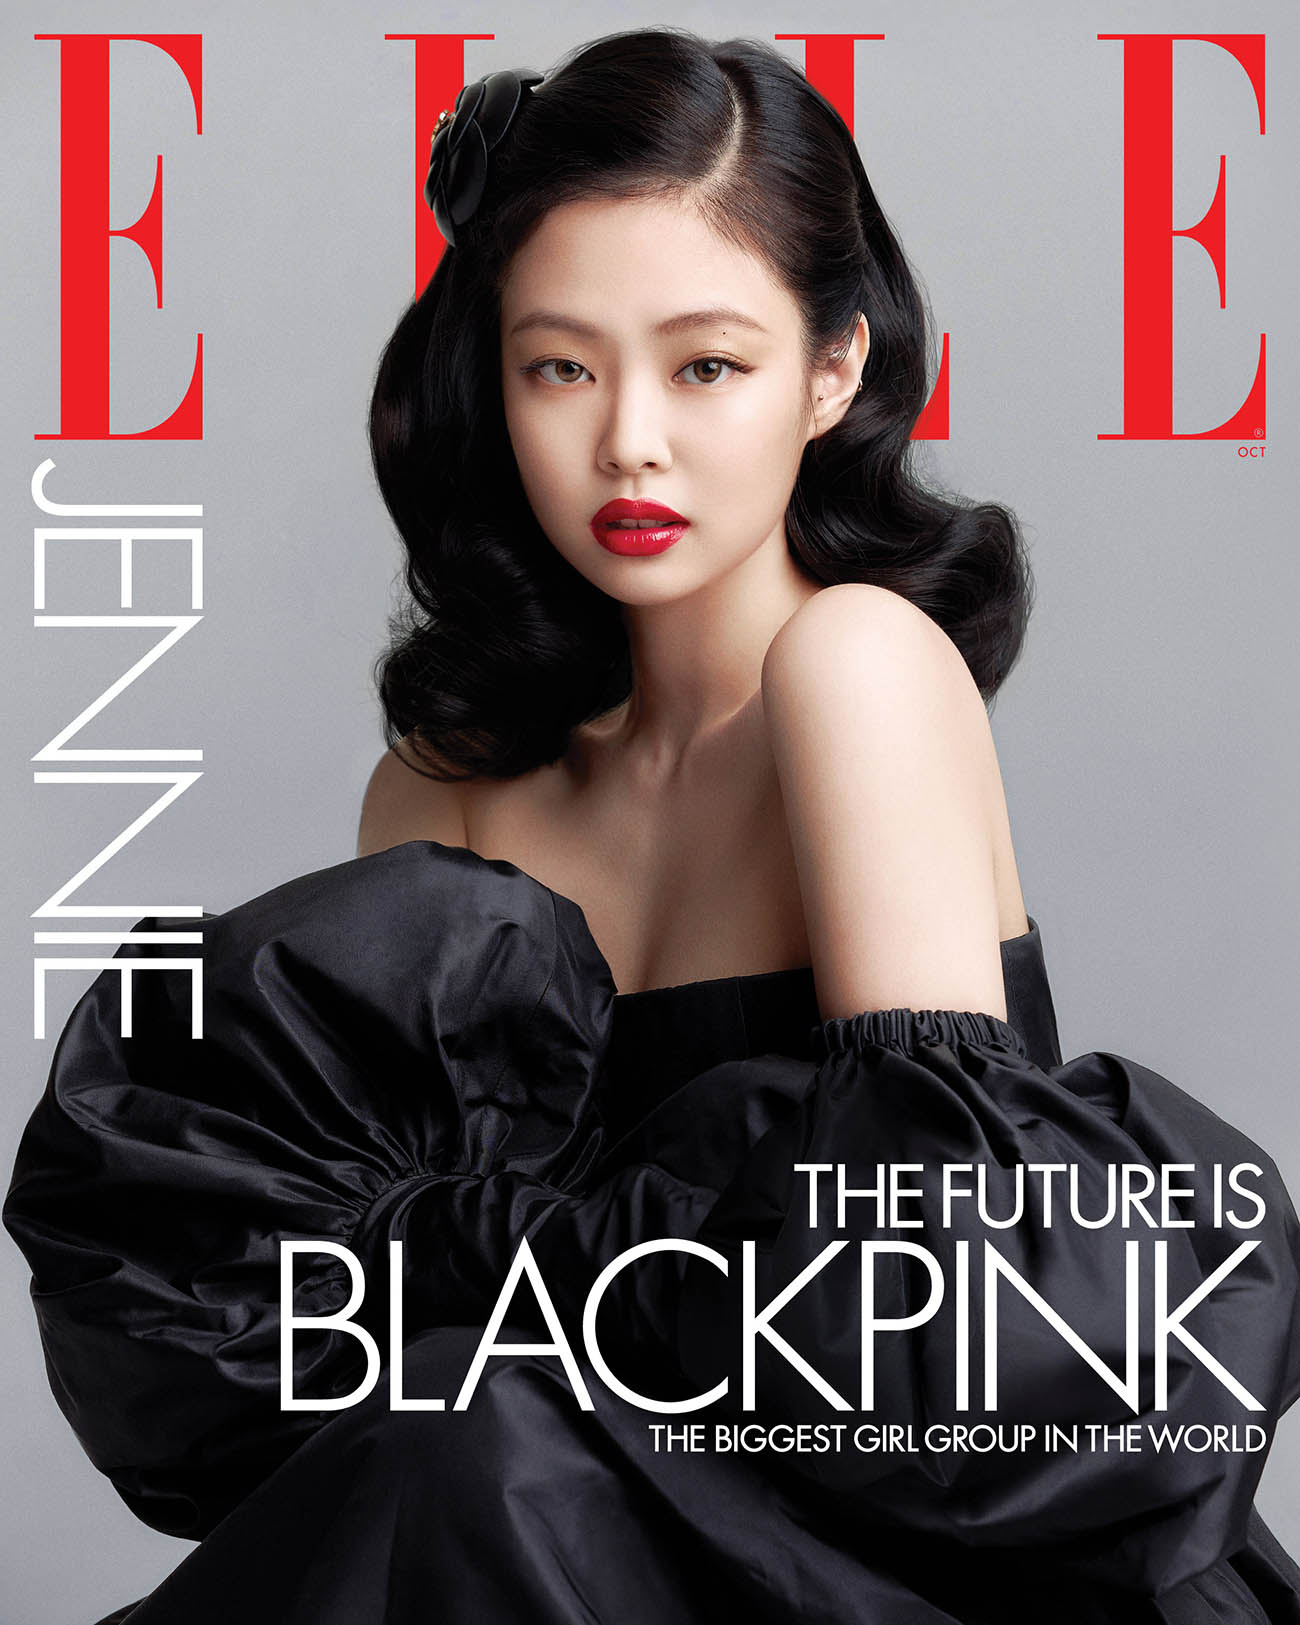 Blackpink covers Elle US October 2020 by Kim Hee June